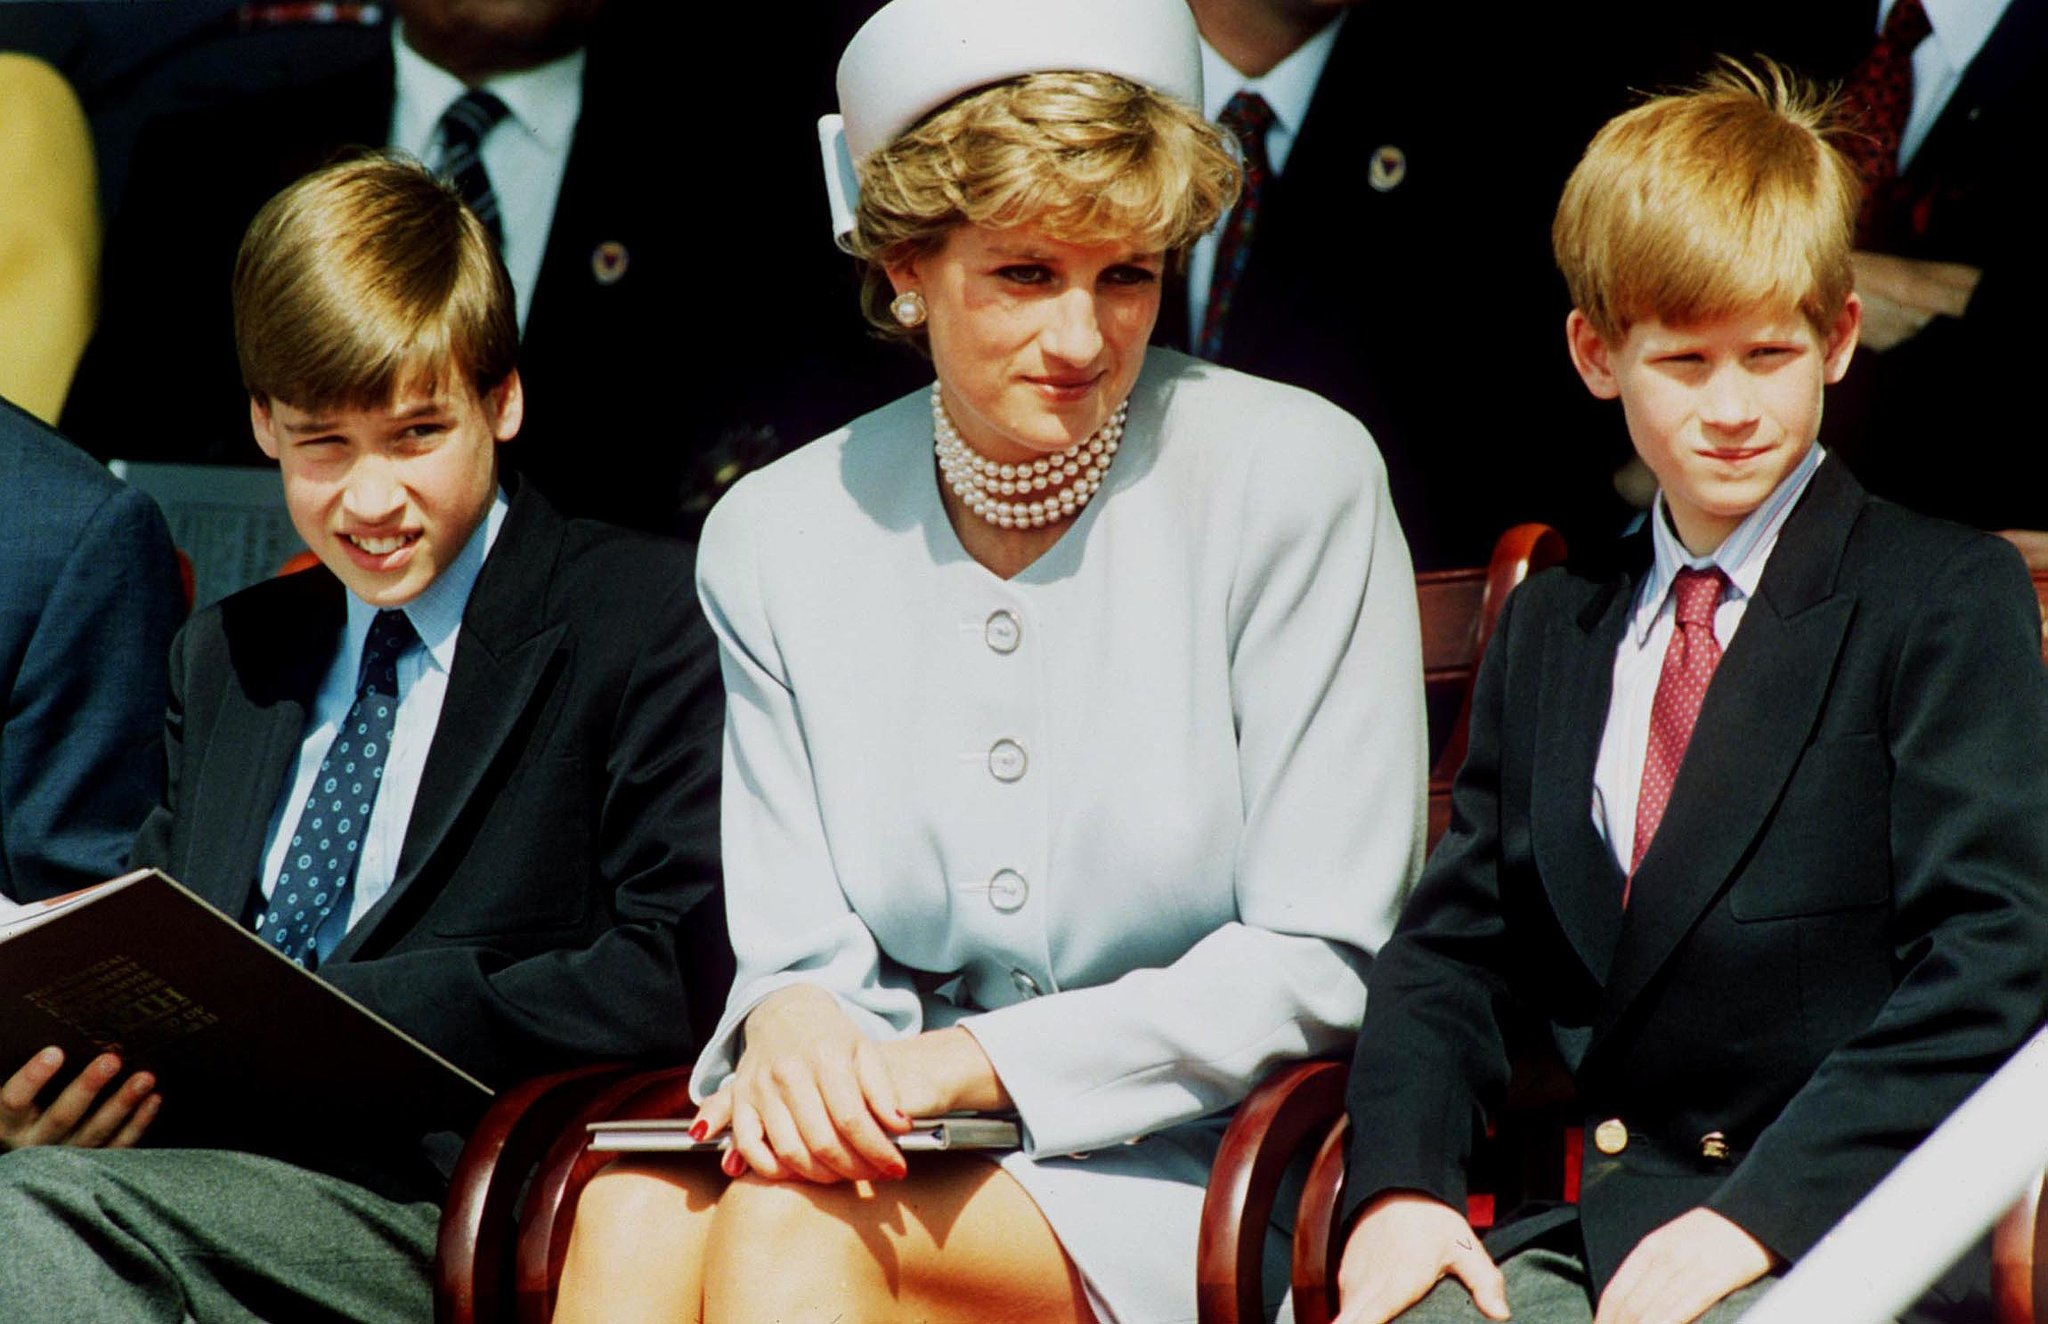 Princess Diana sat between her sons, Prince William and Prince Harry, during a May 1995 event in London's Hyde Park.